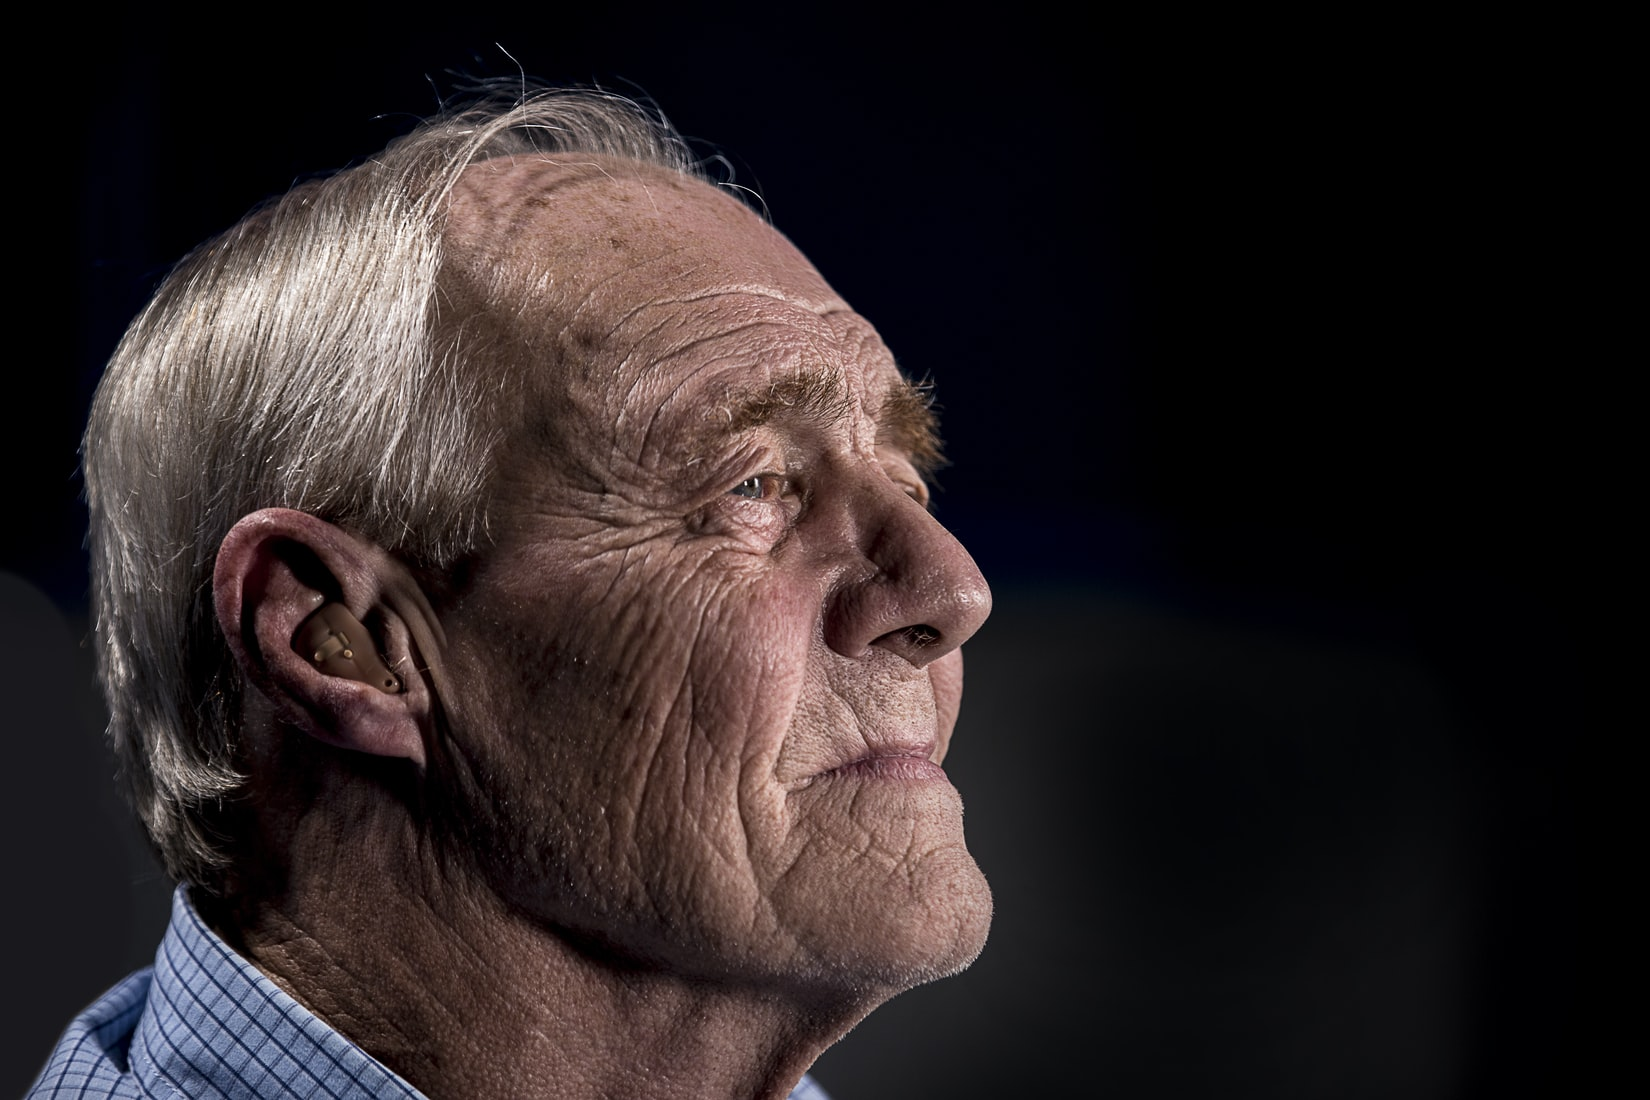 Older man with hearing aid